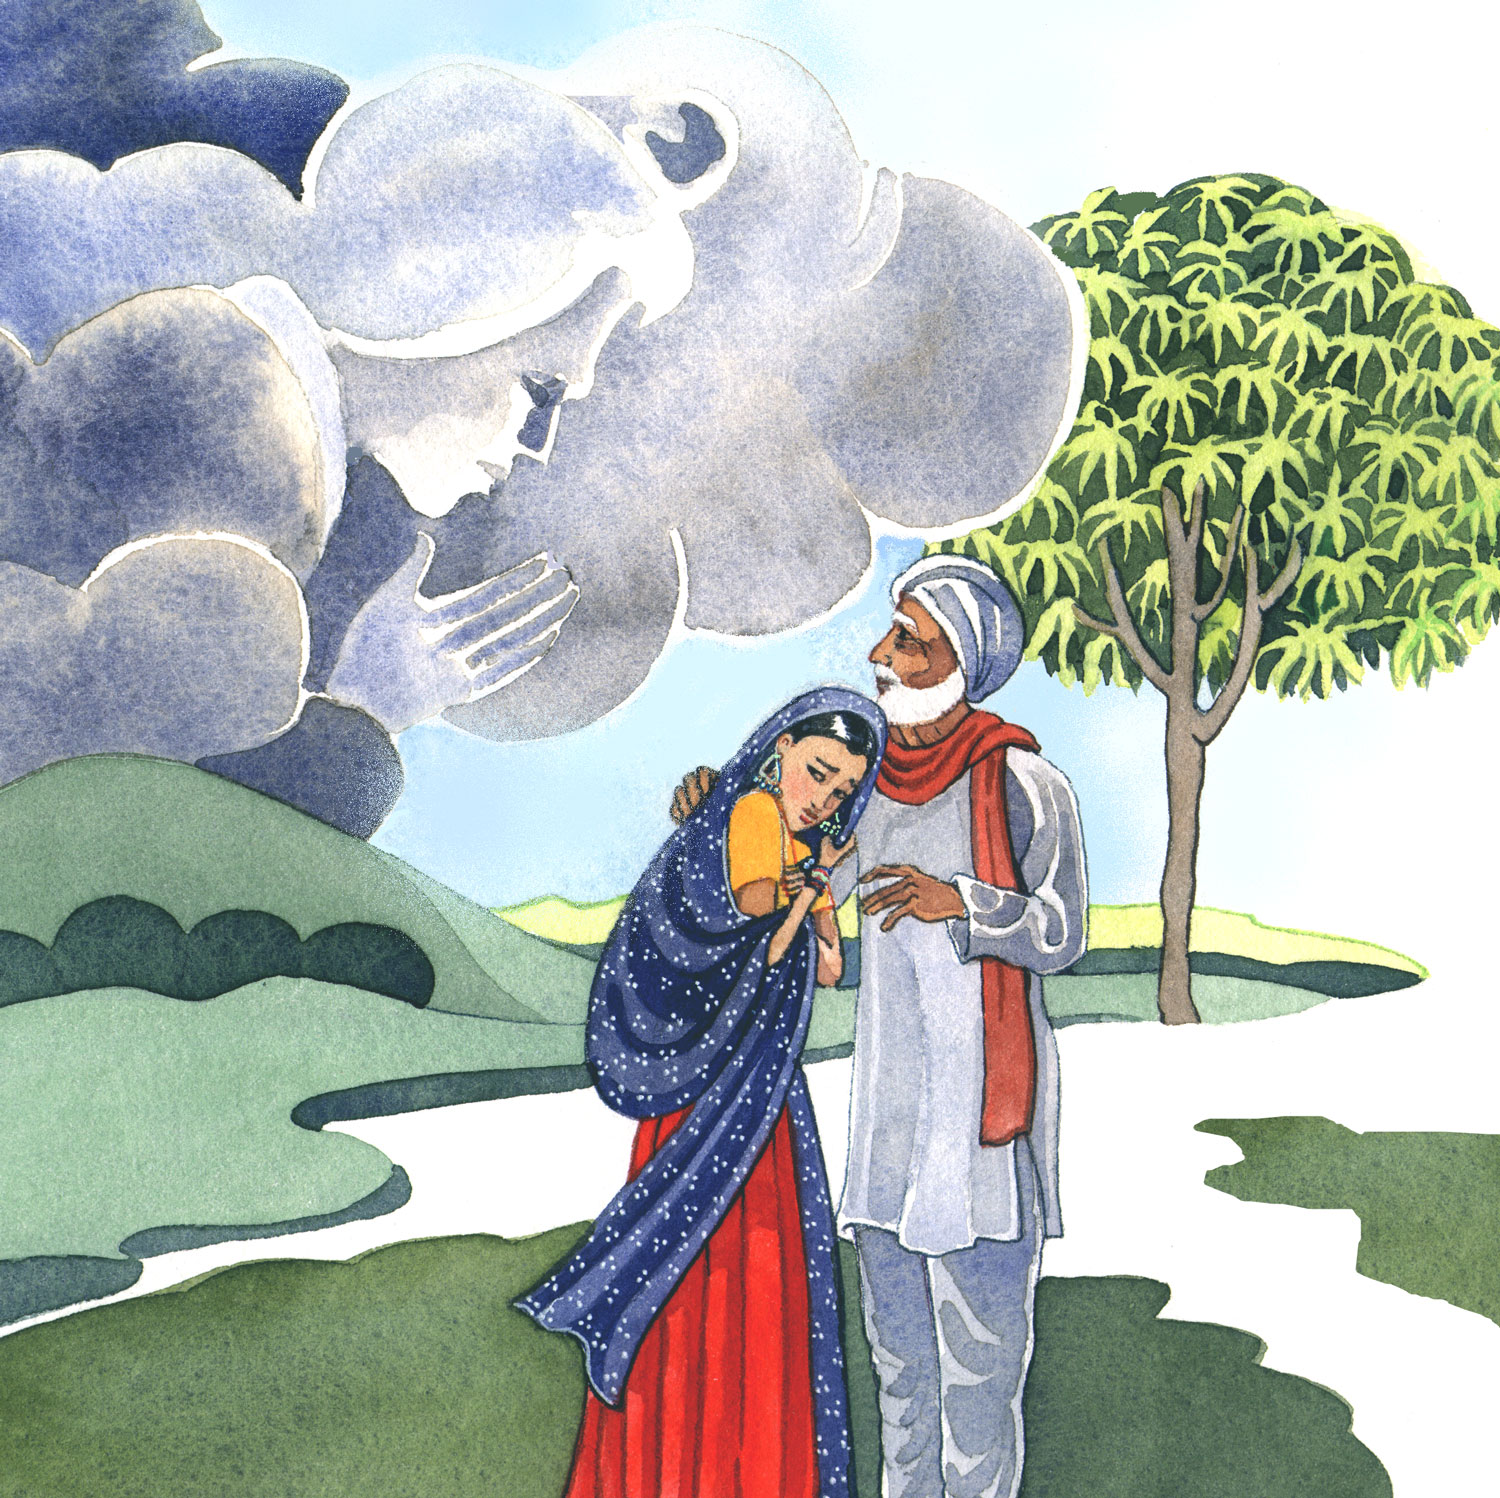 Folktale from India